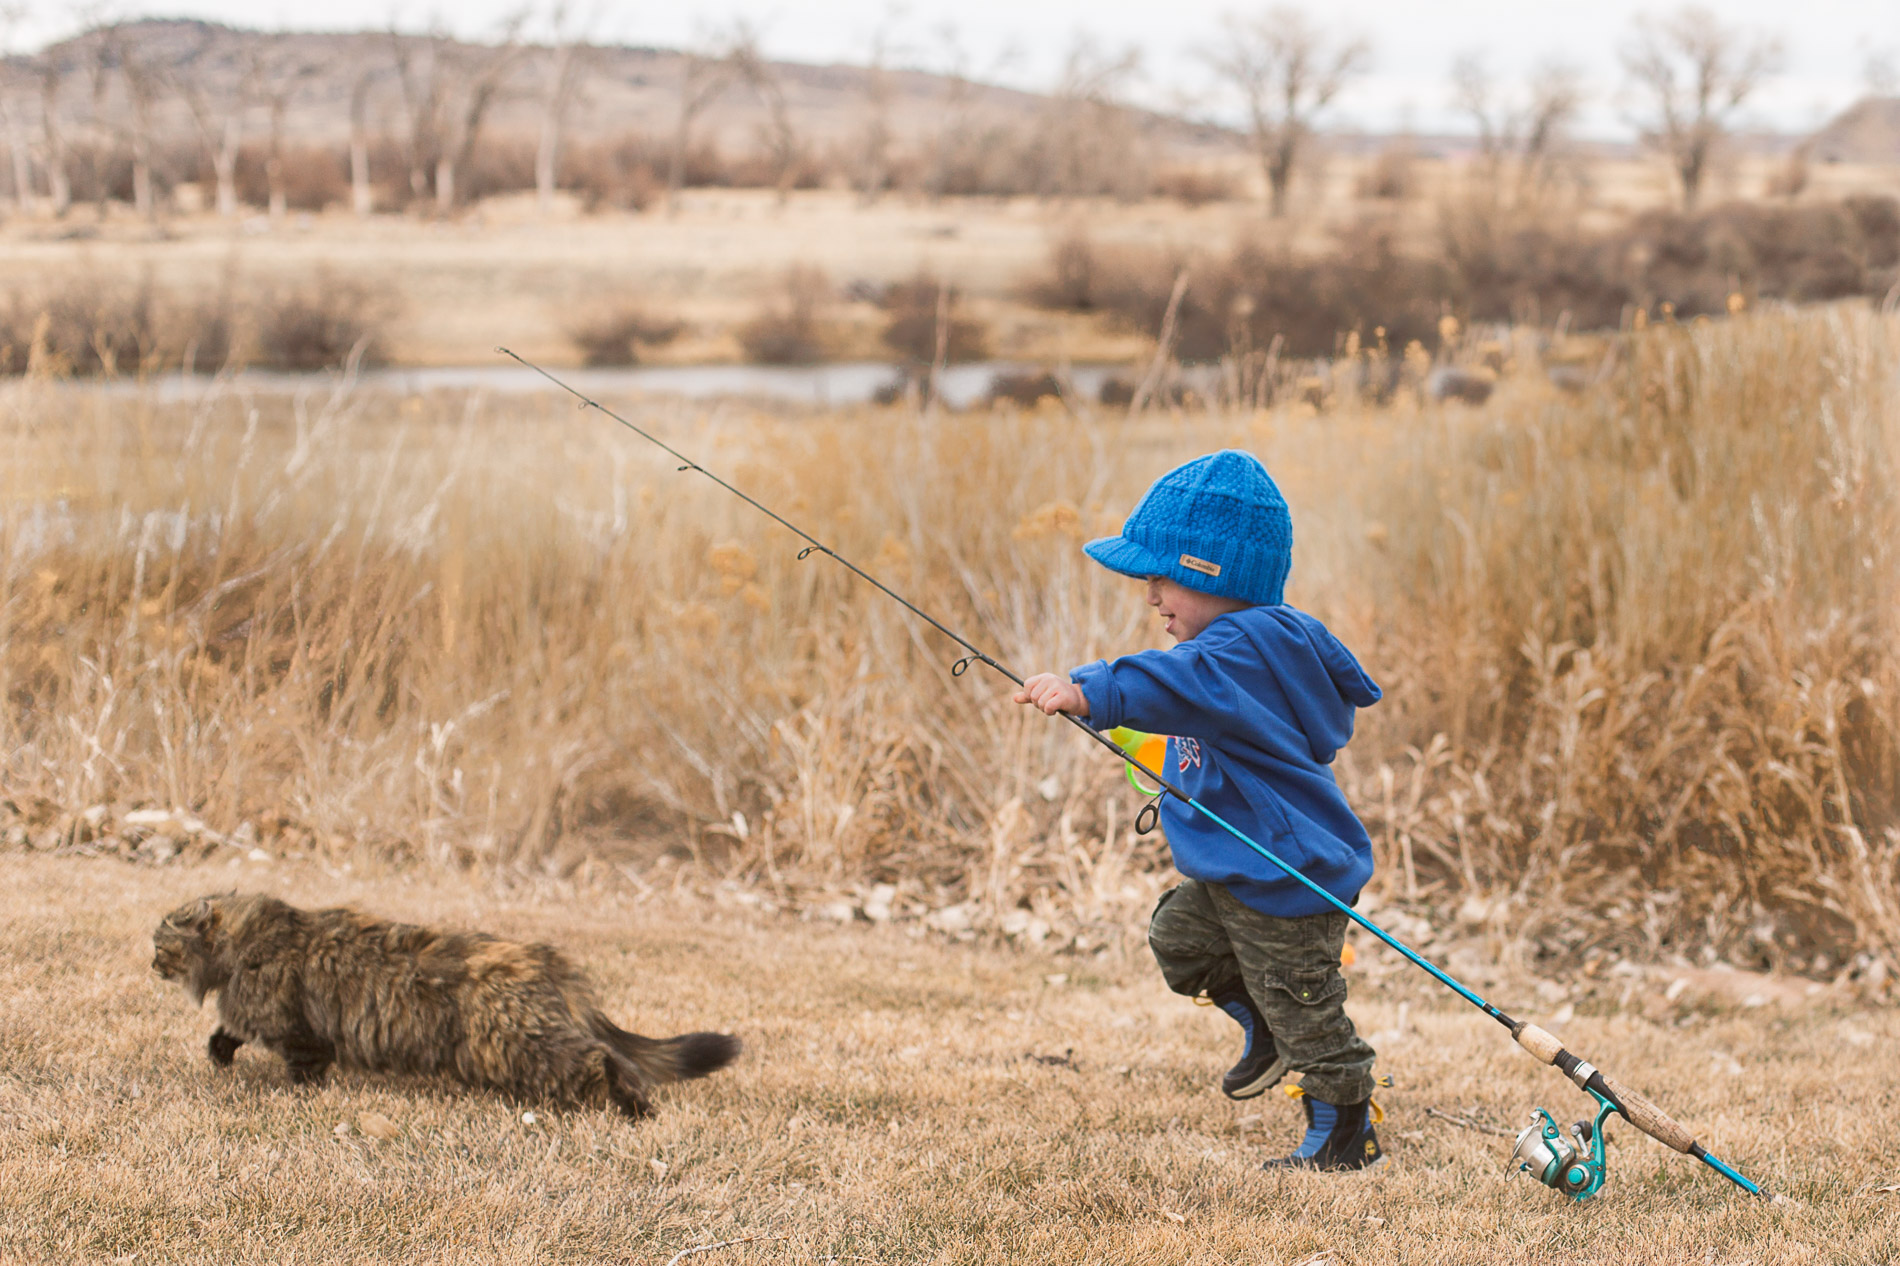 boy toddler and cat going fishing outdoors in wyoming